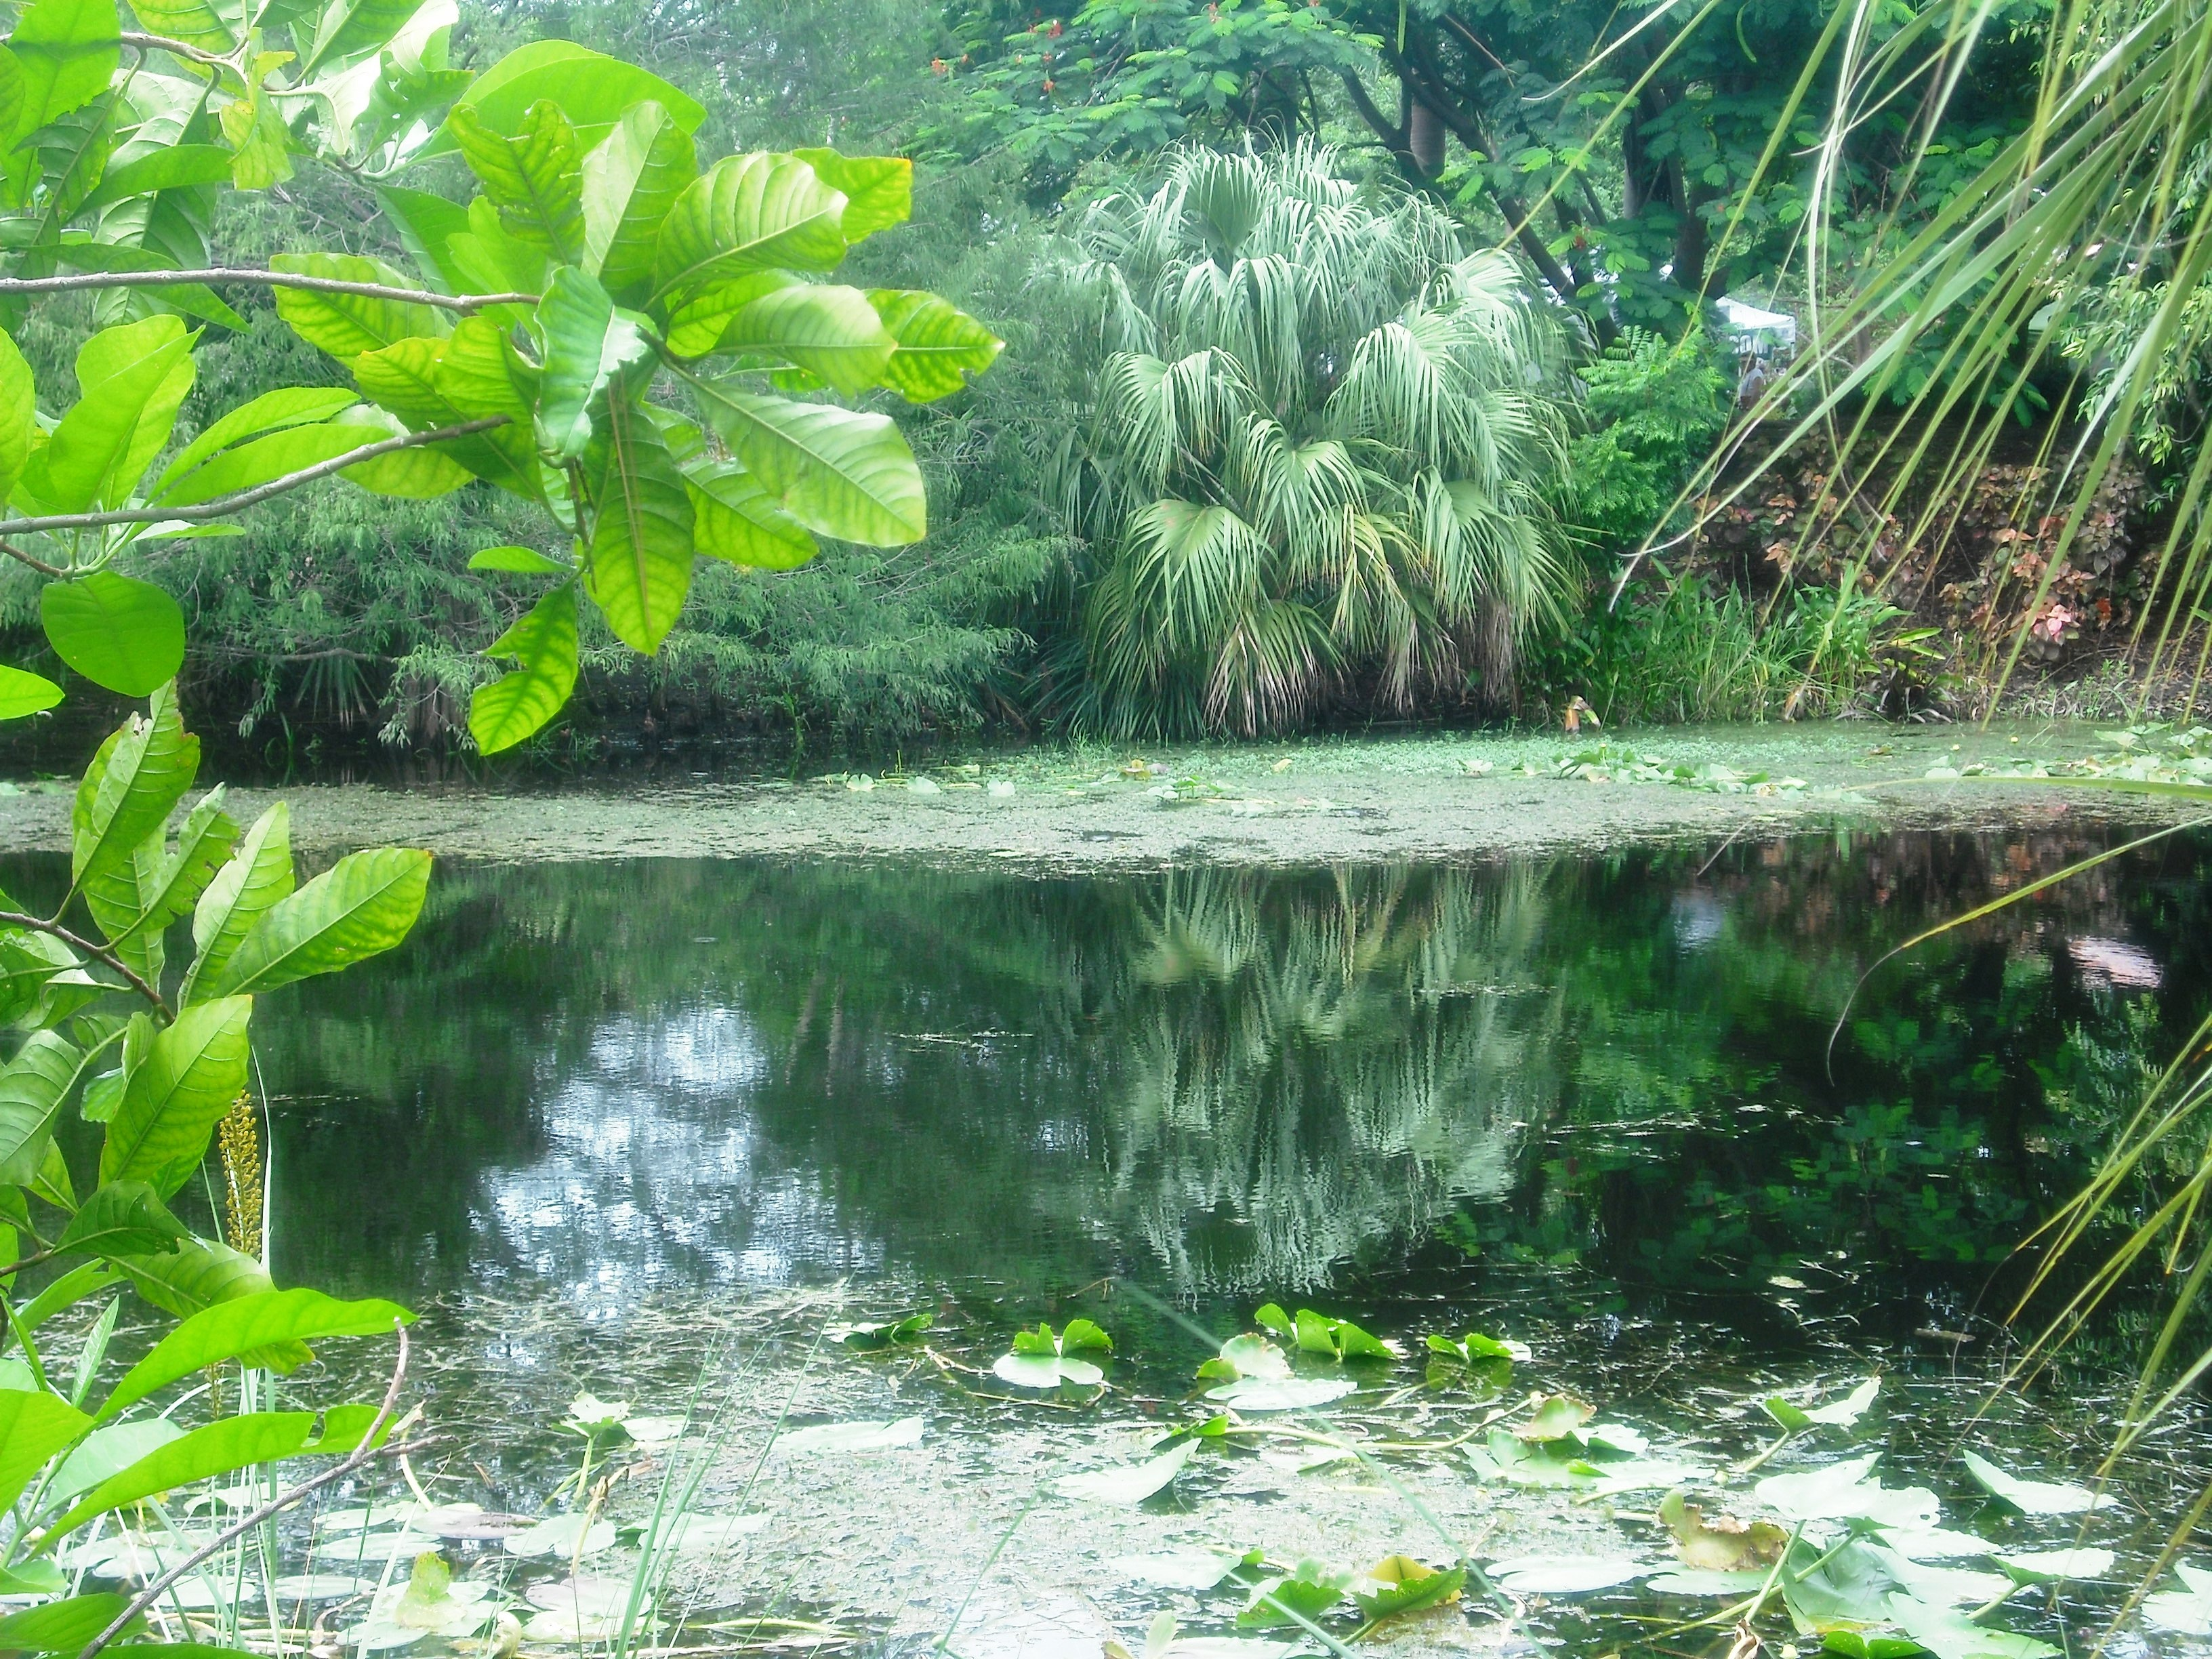 My visit to Mounts Botanical Garden | West Palm Beach Parks